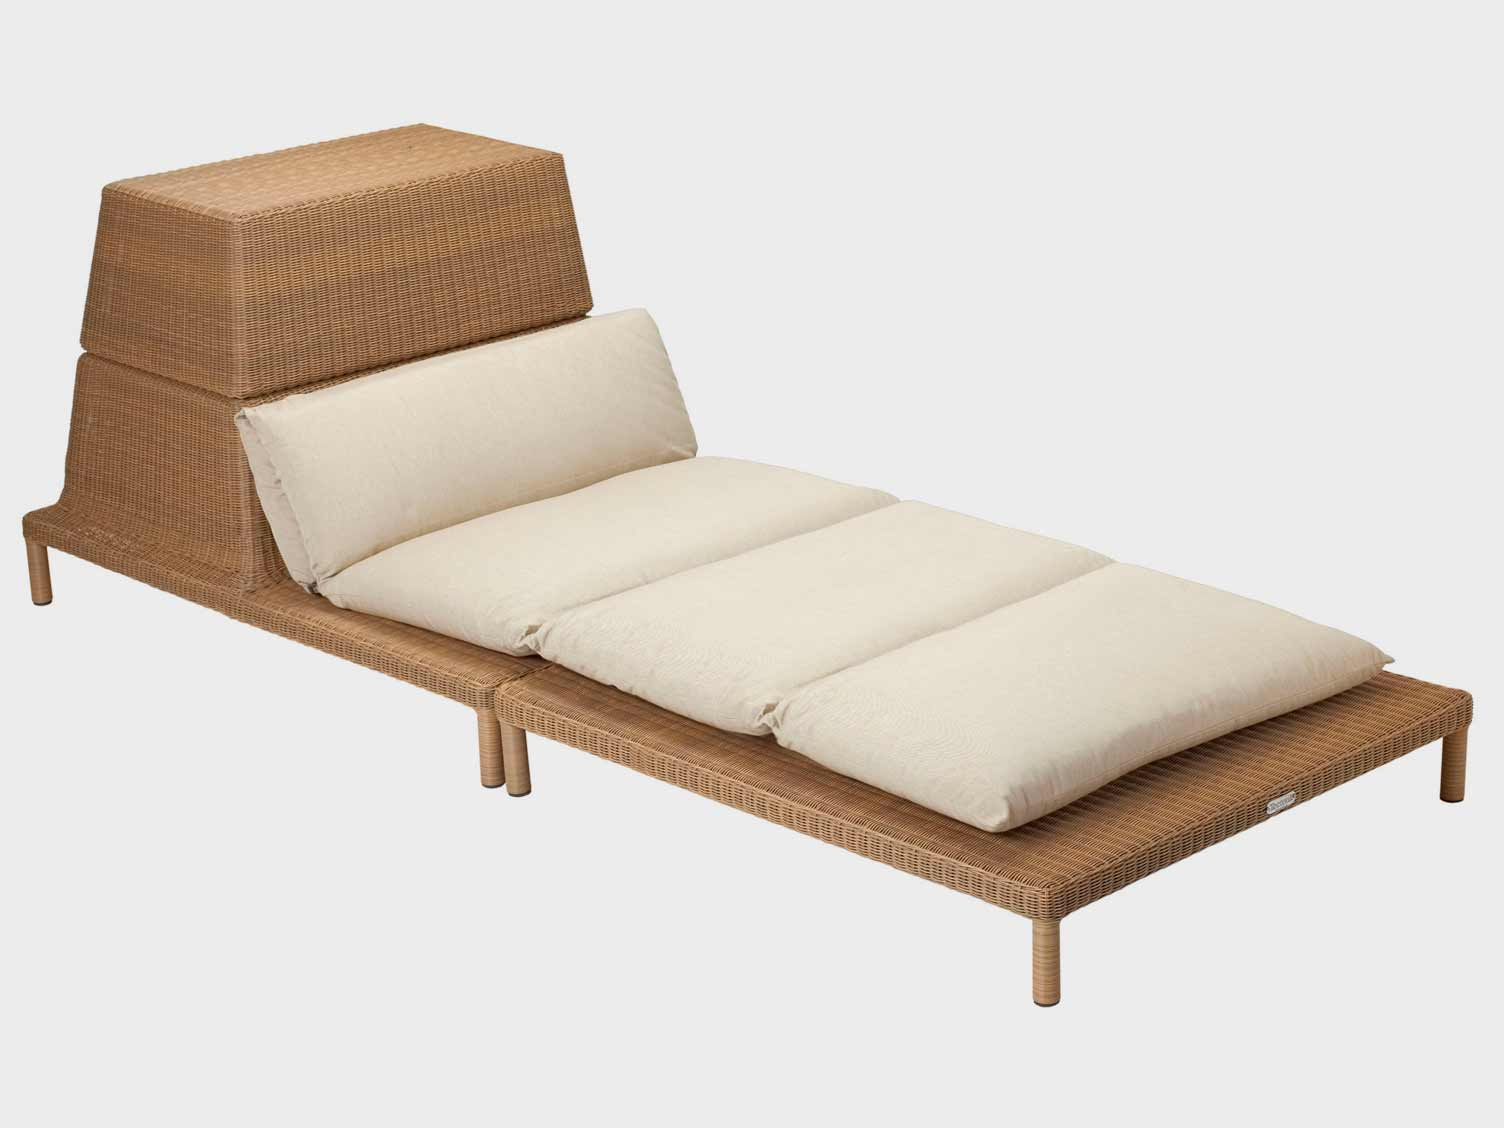 Sun lounger with storage compartment